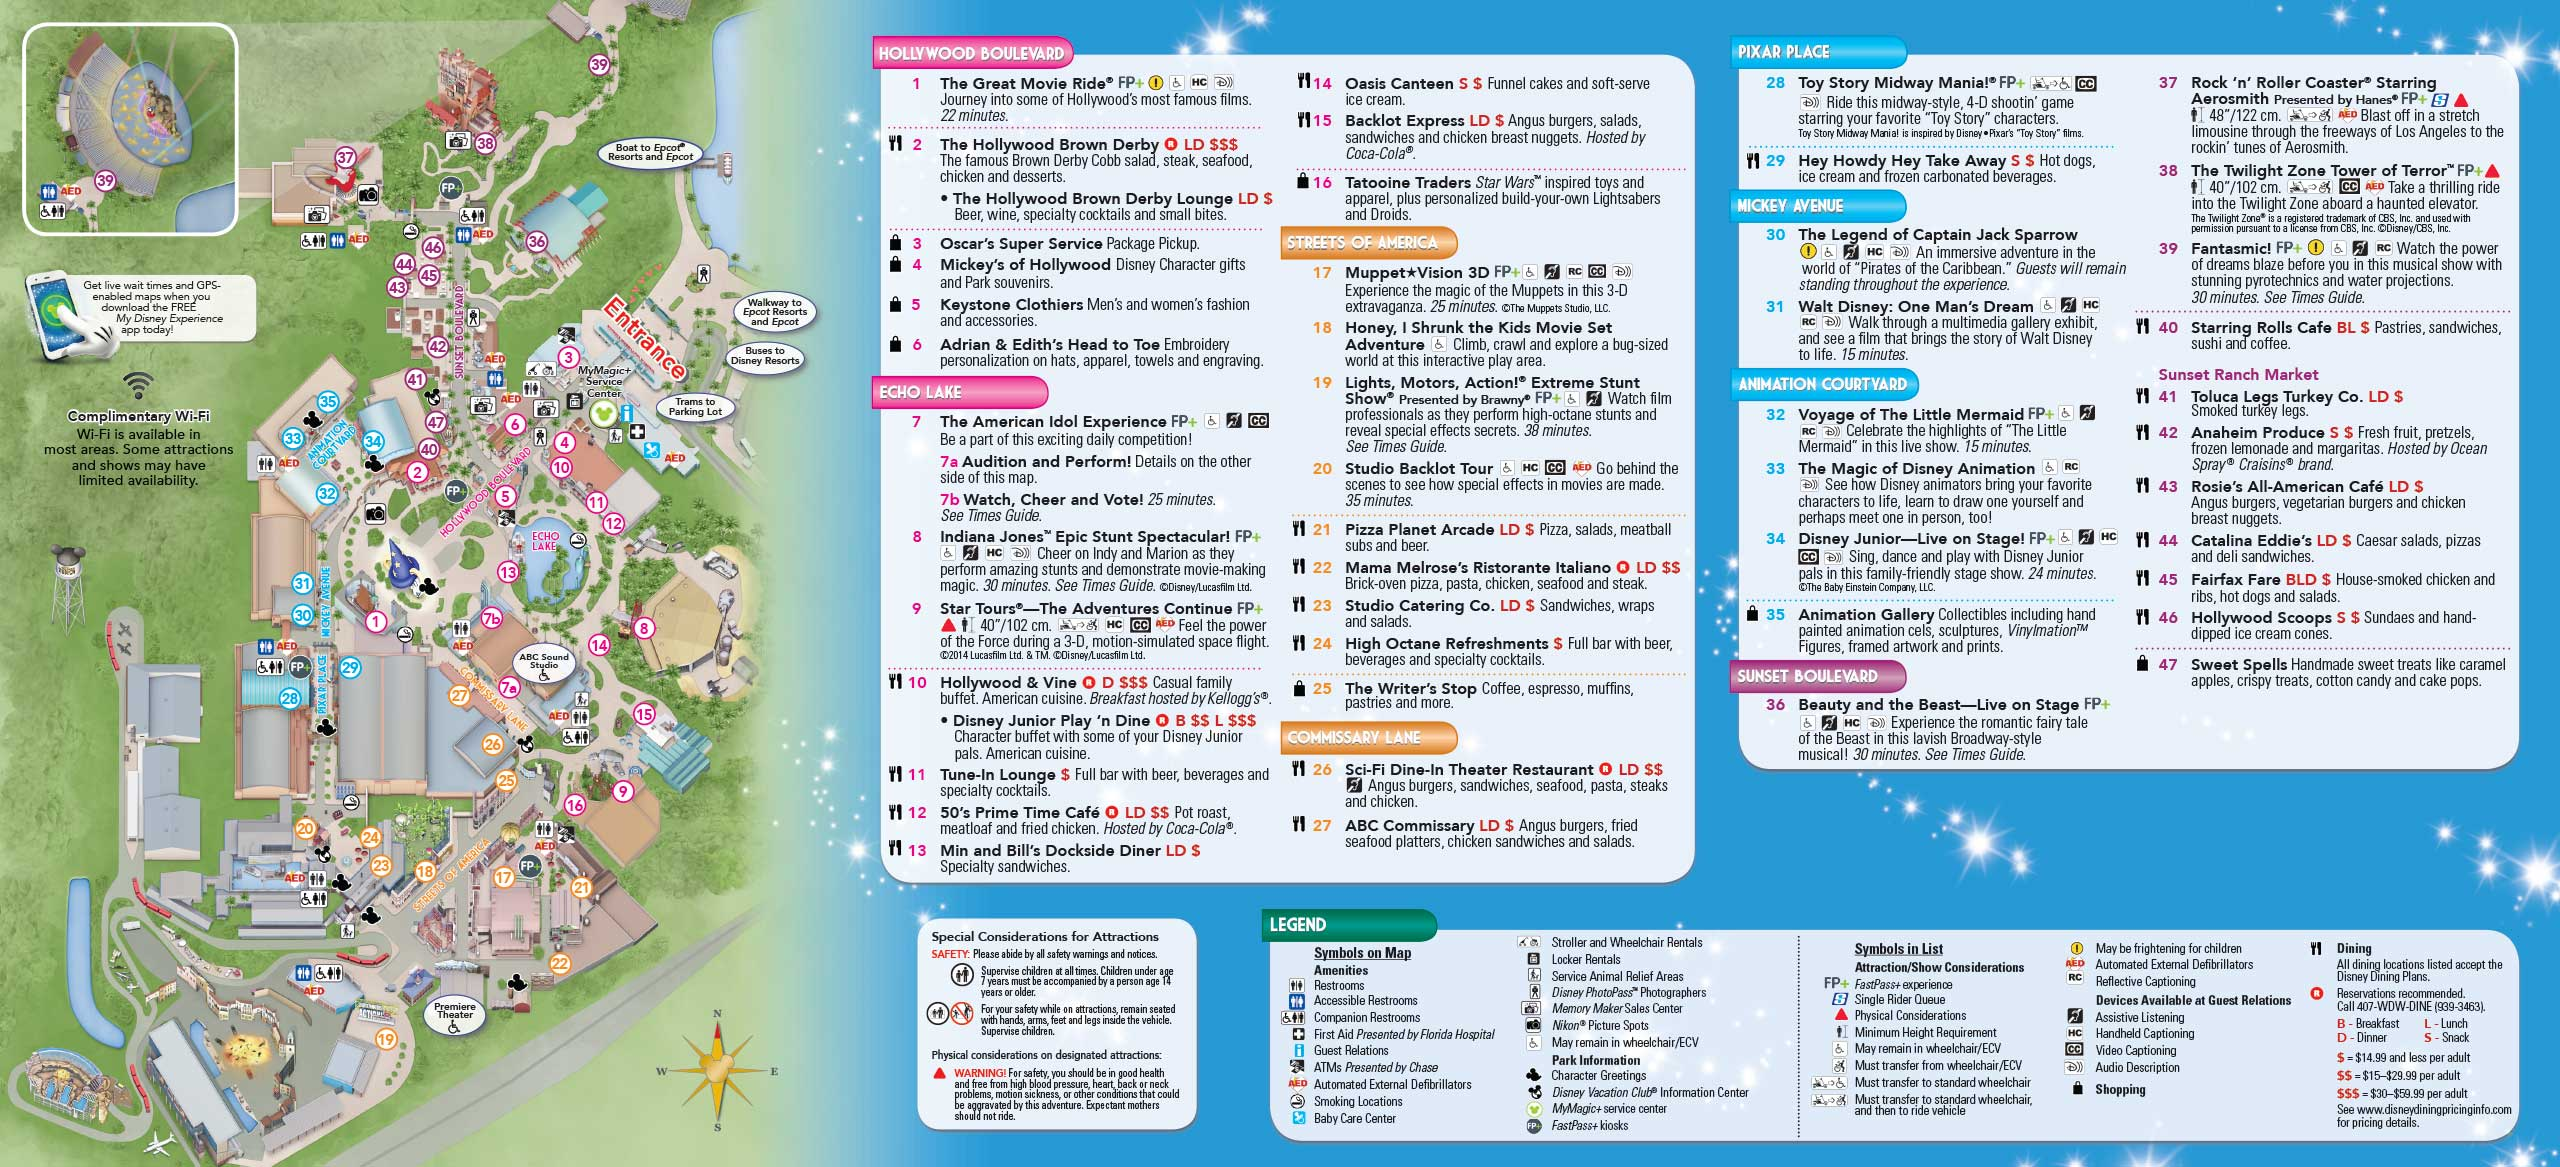 ... - 2014 Disney's Hollywood Studios guide map with FastPass+ details